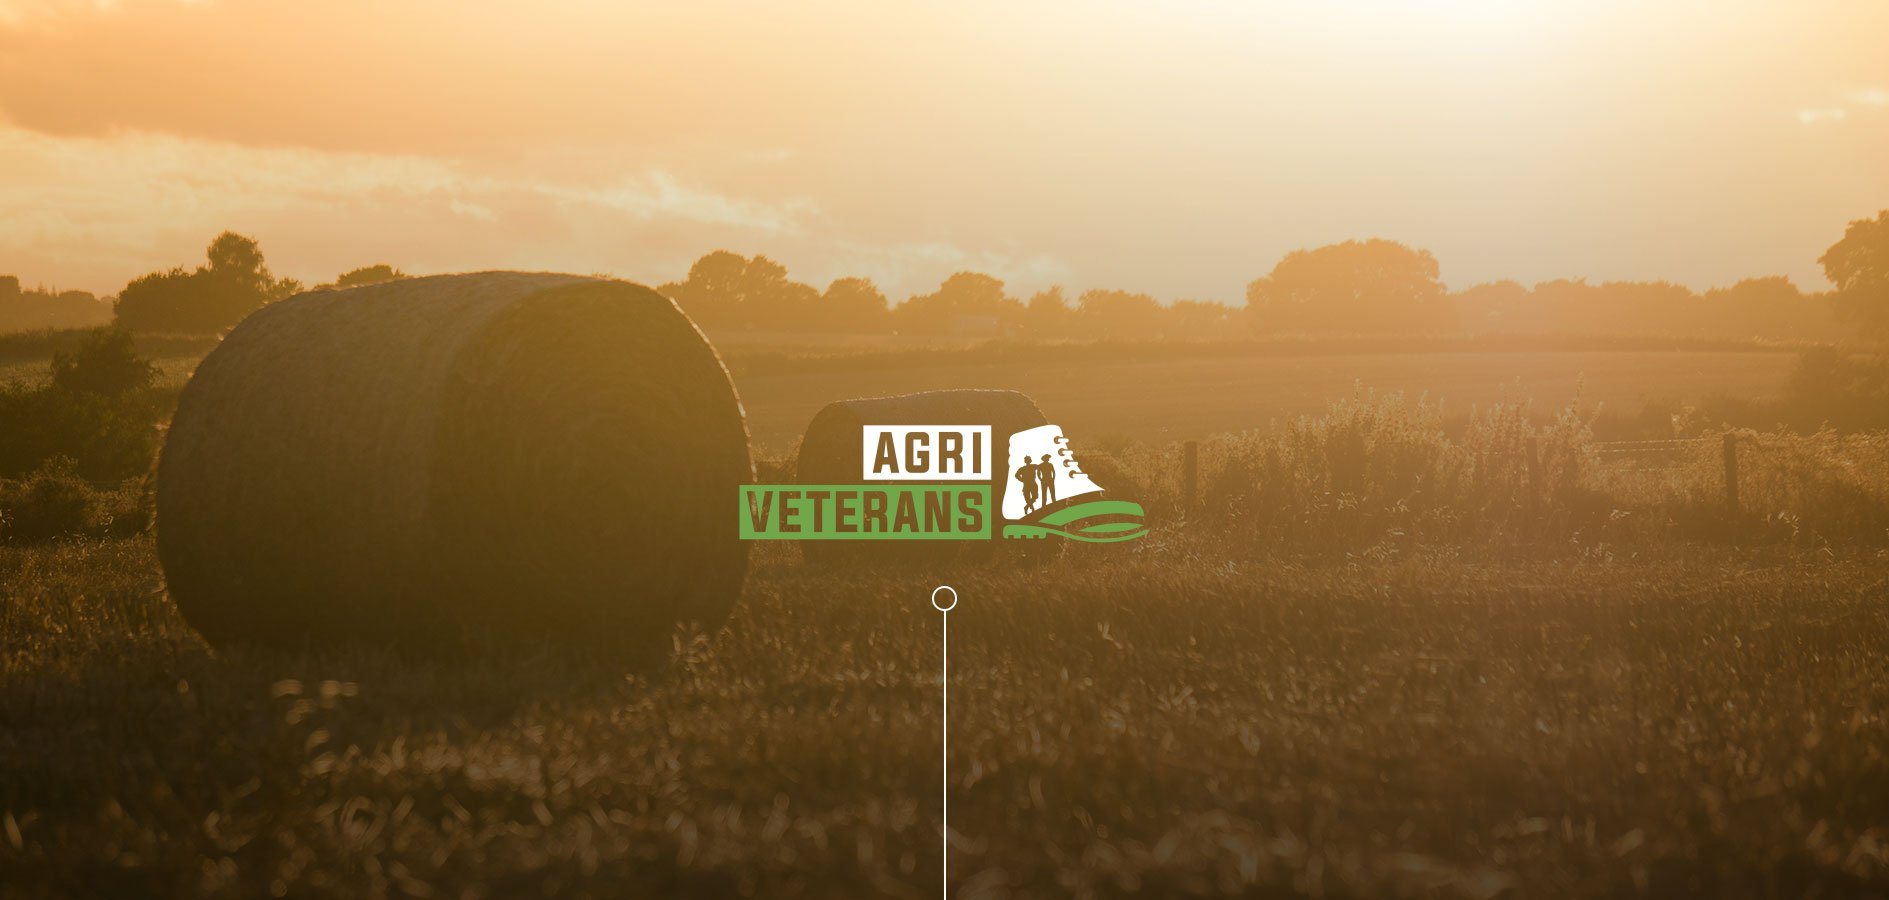 Graphic Design for Agri Veterans by Sketch Corp.